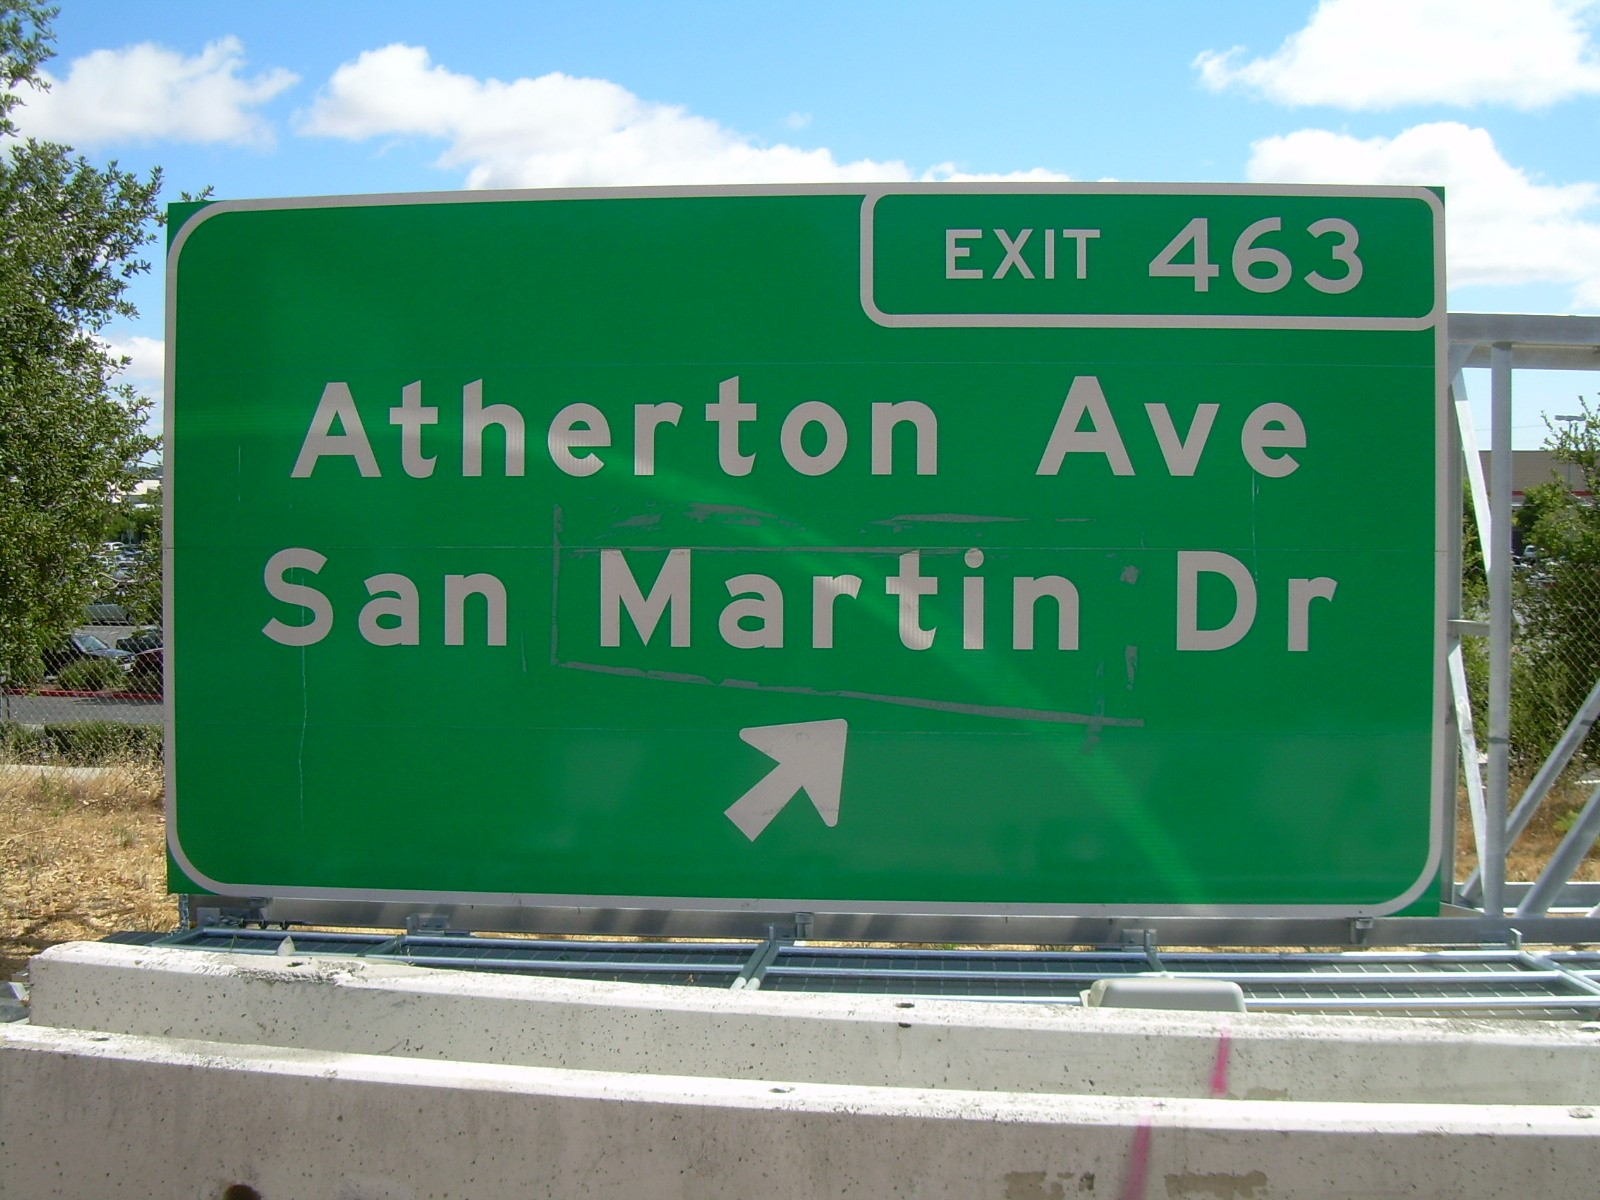 Cal Trans gets Highway sign on US 101 incorrect by placing San Martin instead of San Marin!